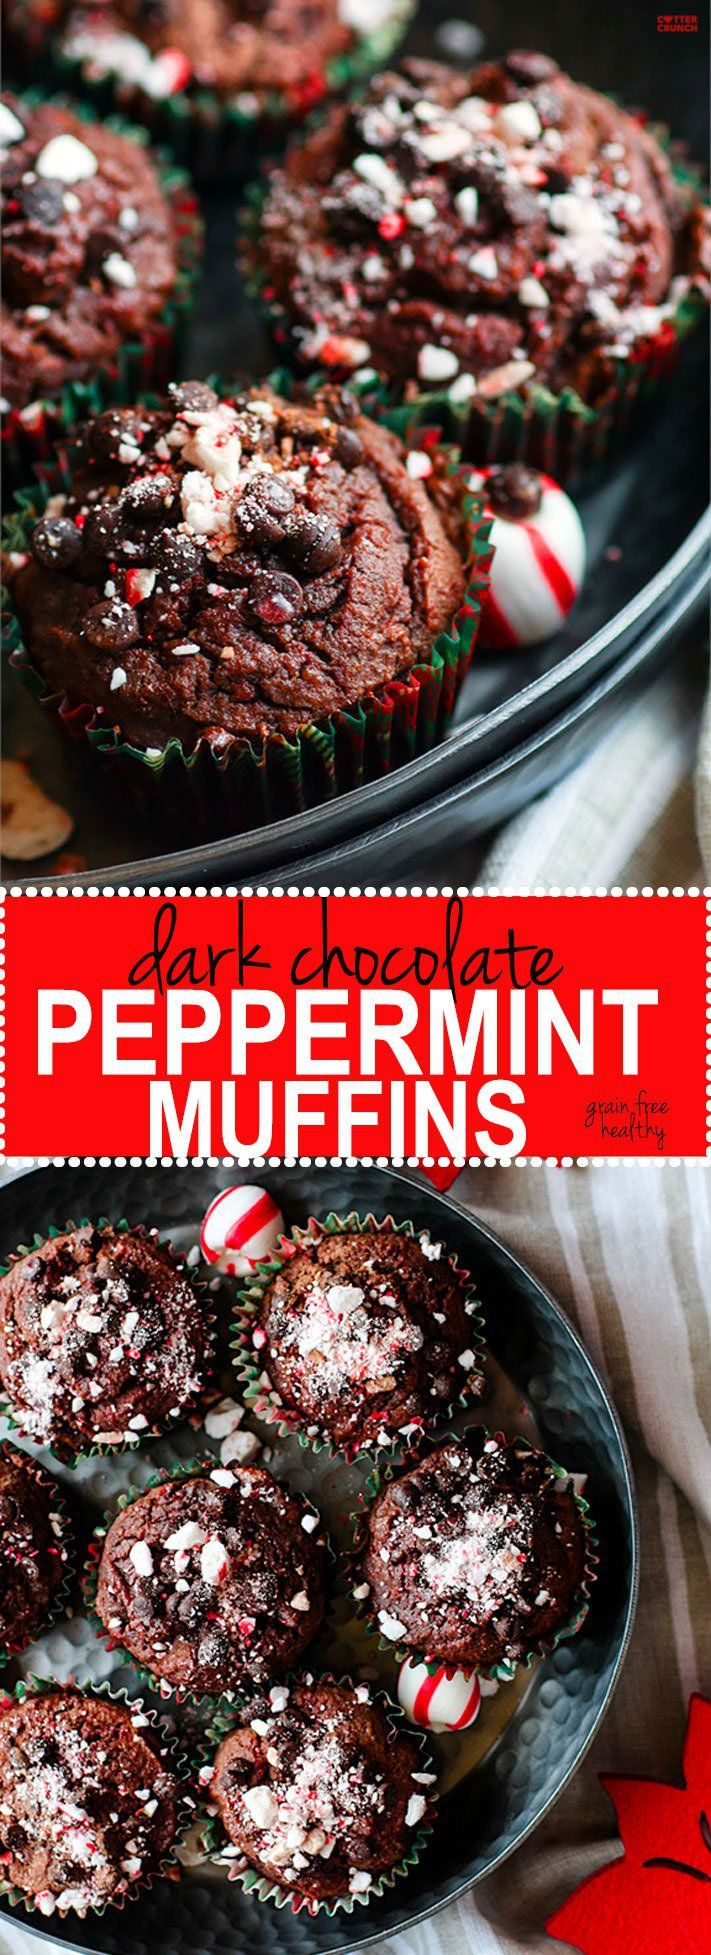 Dark Chocolate Peppermint Muffins with Soothing Peppermint oil {Grain Free}